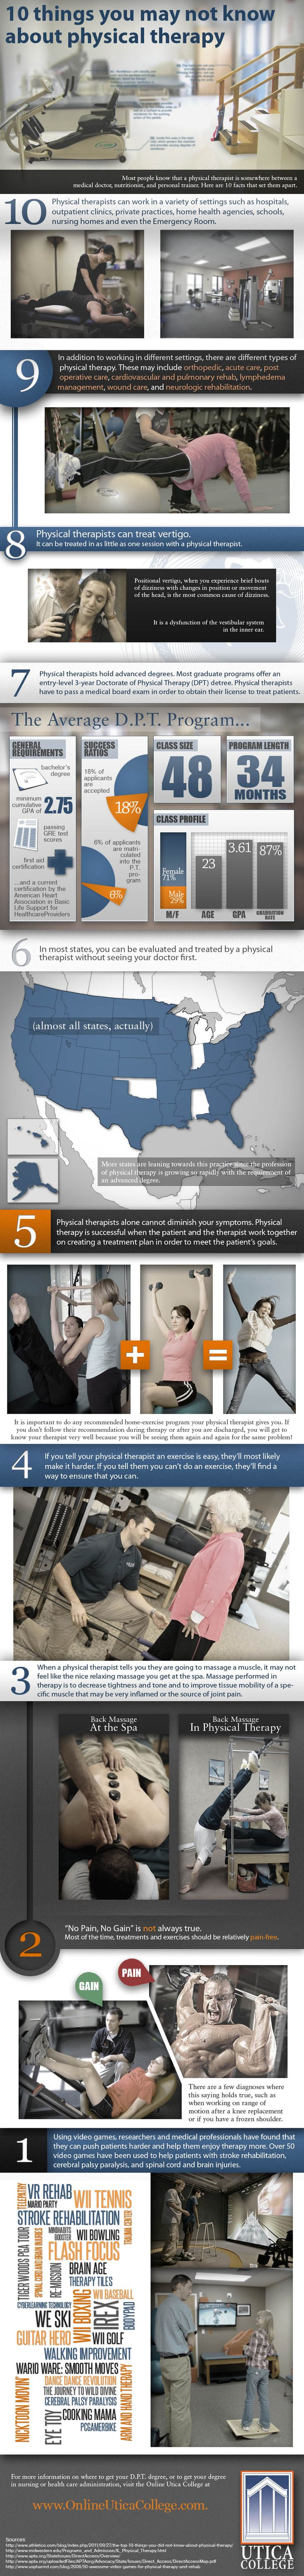 Advance physical therapy magazine - An Infographic That Illustrates 10 Points That You May Not Know About Physical Therapy Are You Interested In Becoming A Physical Therapist Lol Is So True